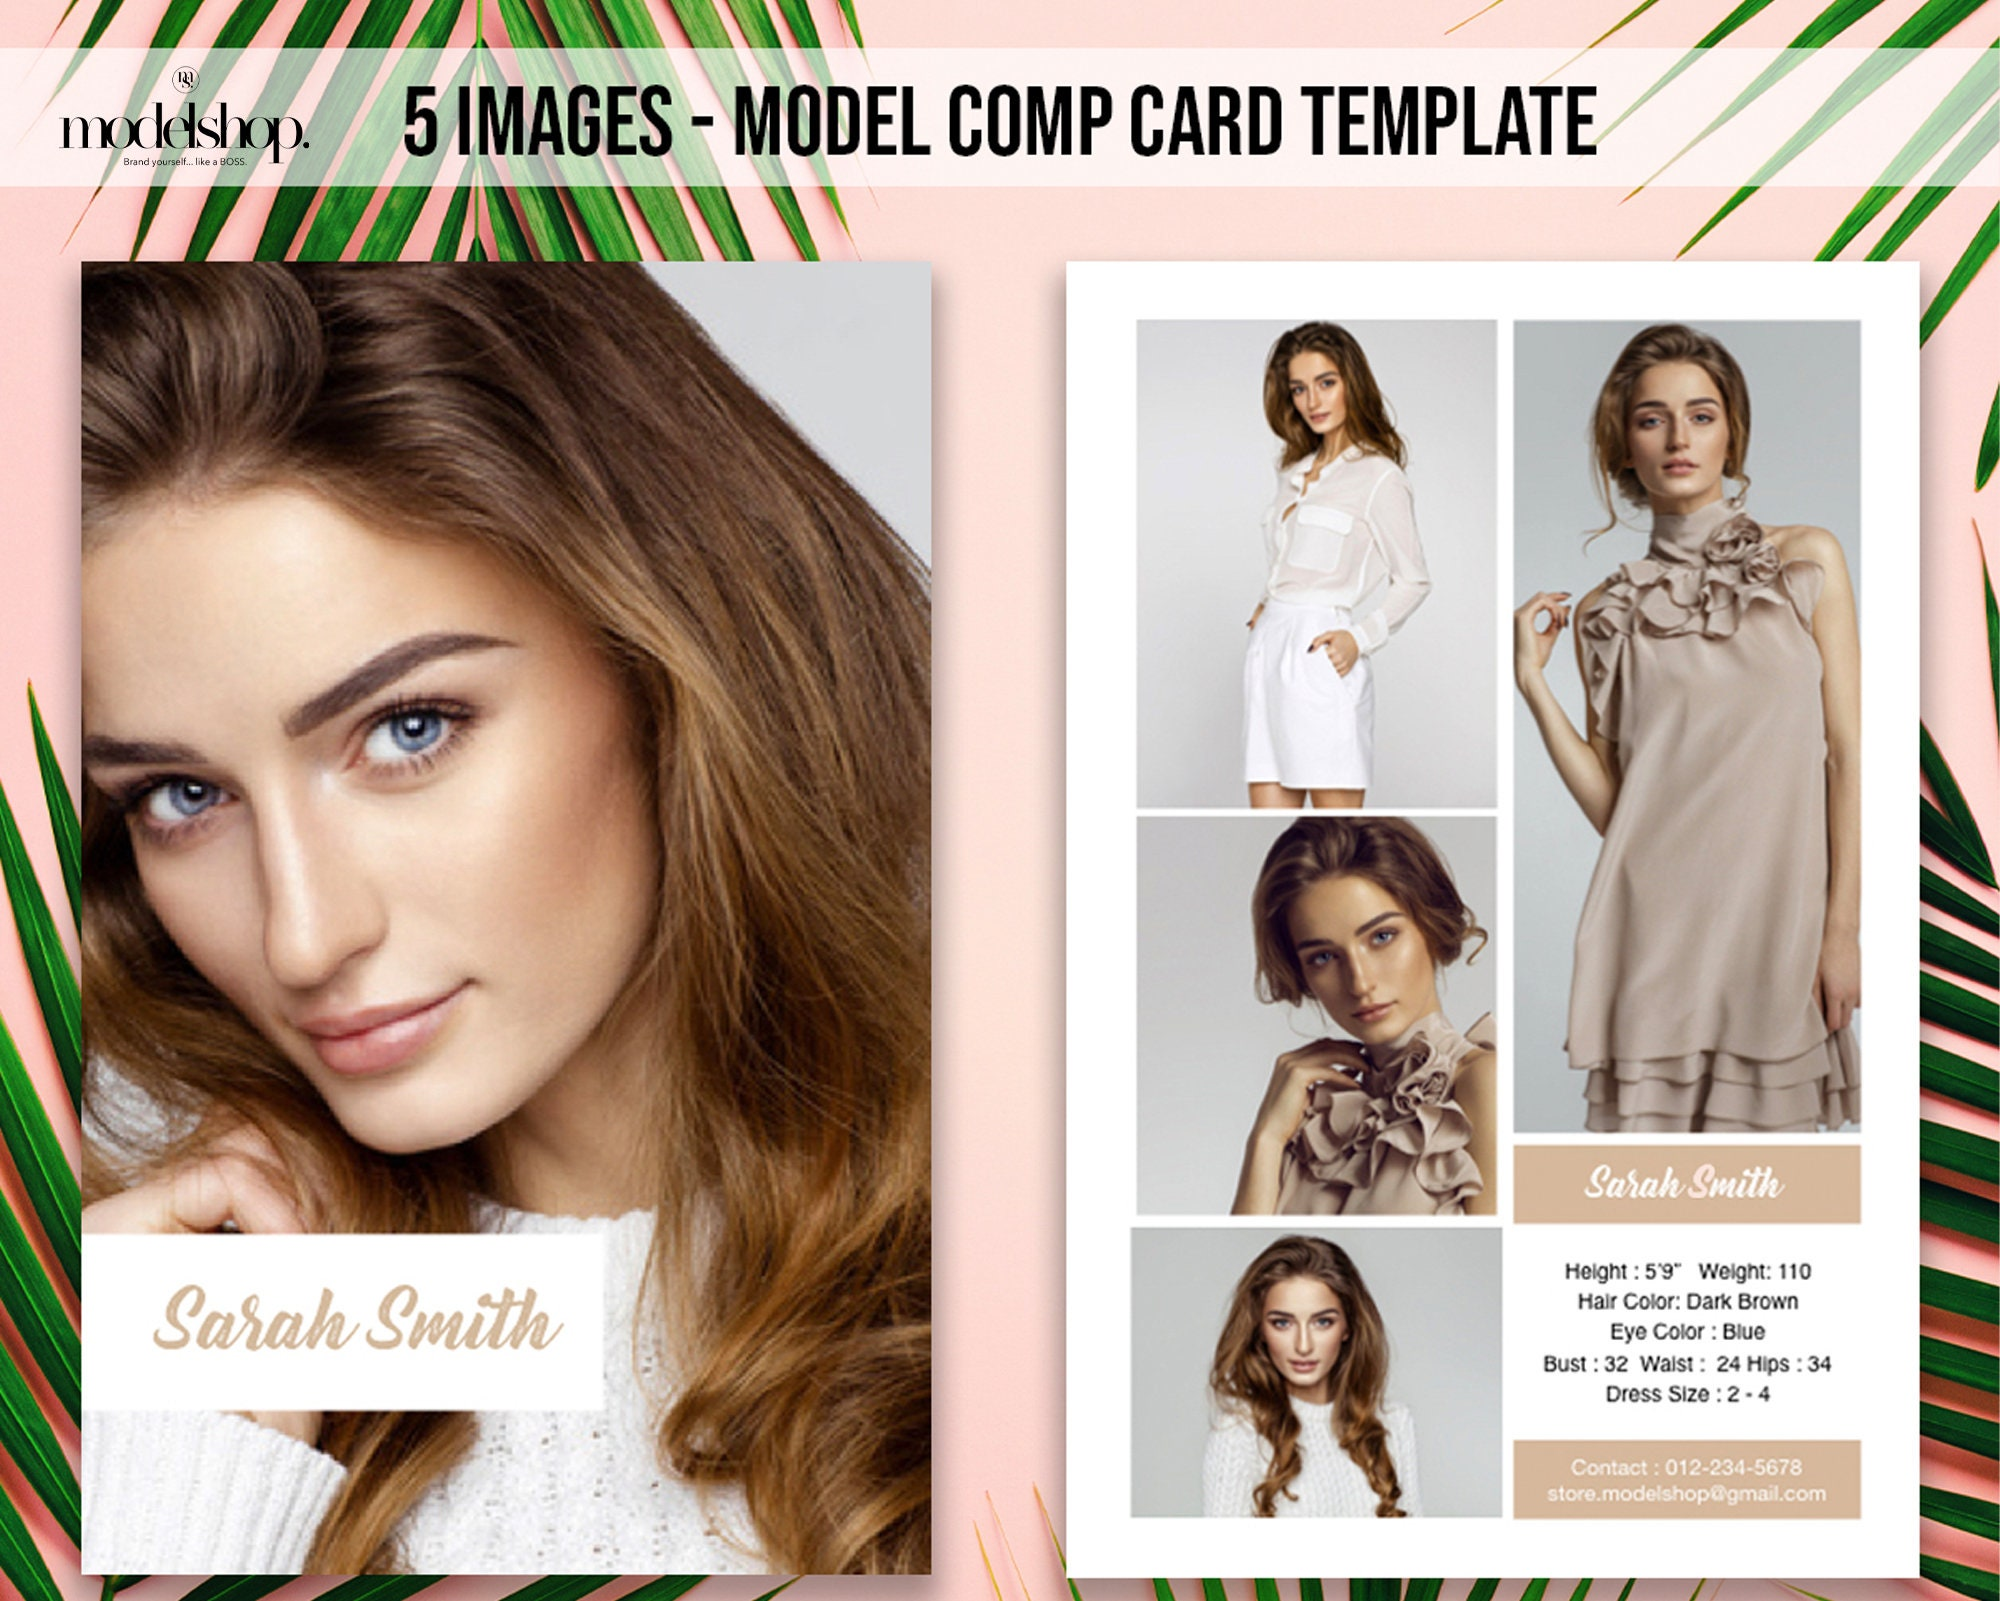 Modeling Comp Card  21 image Model Comp Card Template  Actor Comp Card   Instant Download  PDF, Keynote, Powerpoint,EASY EDIT With Regard To Download Comp Card Template